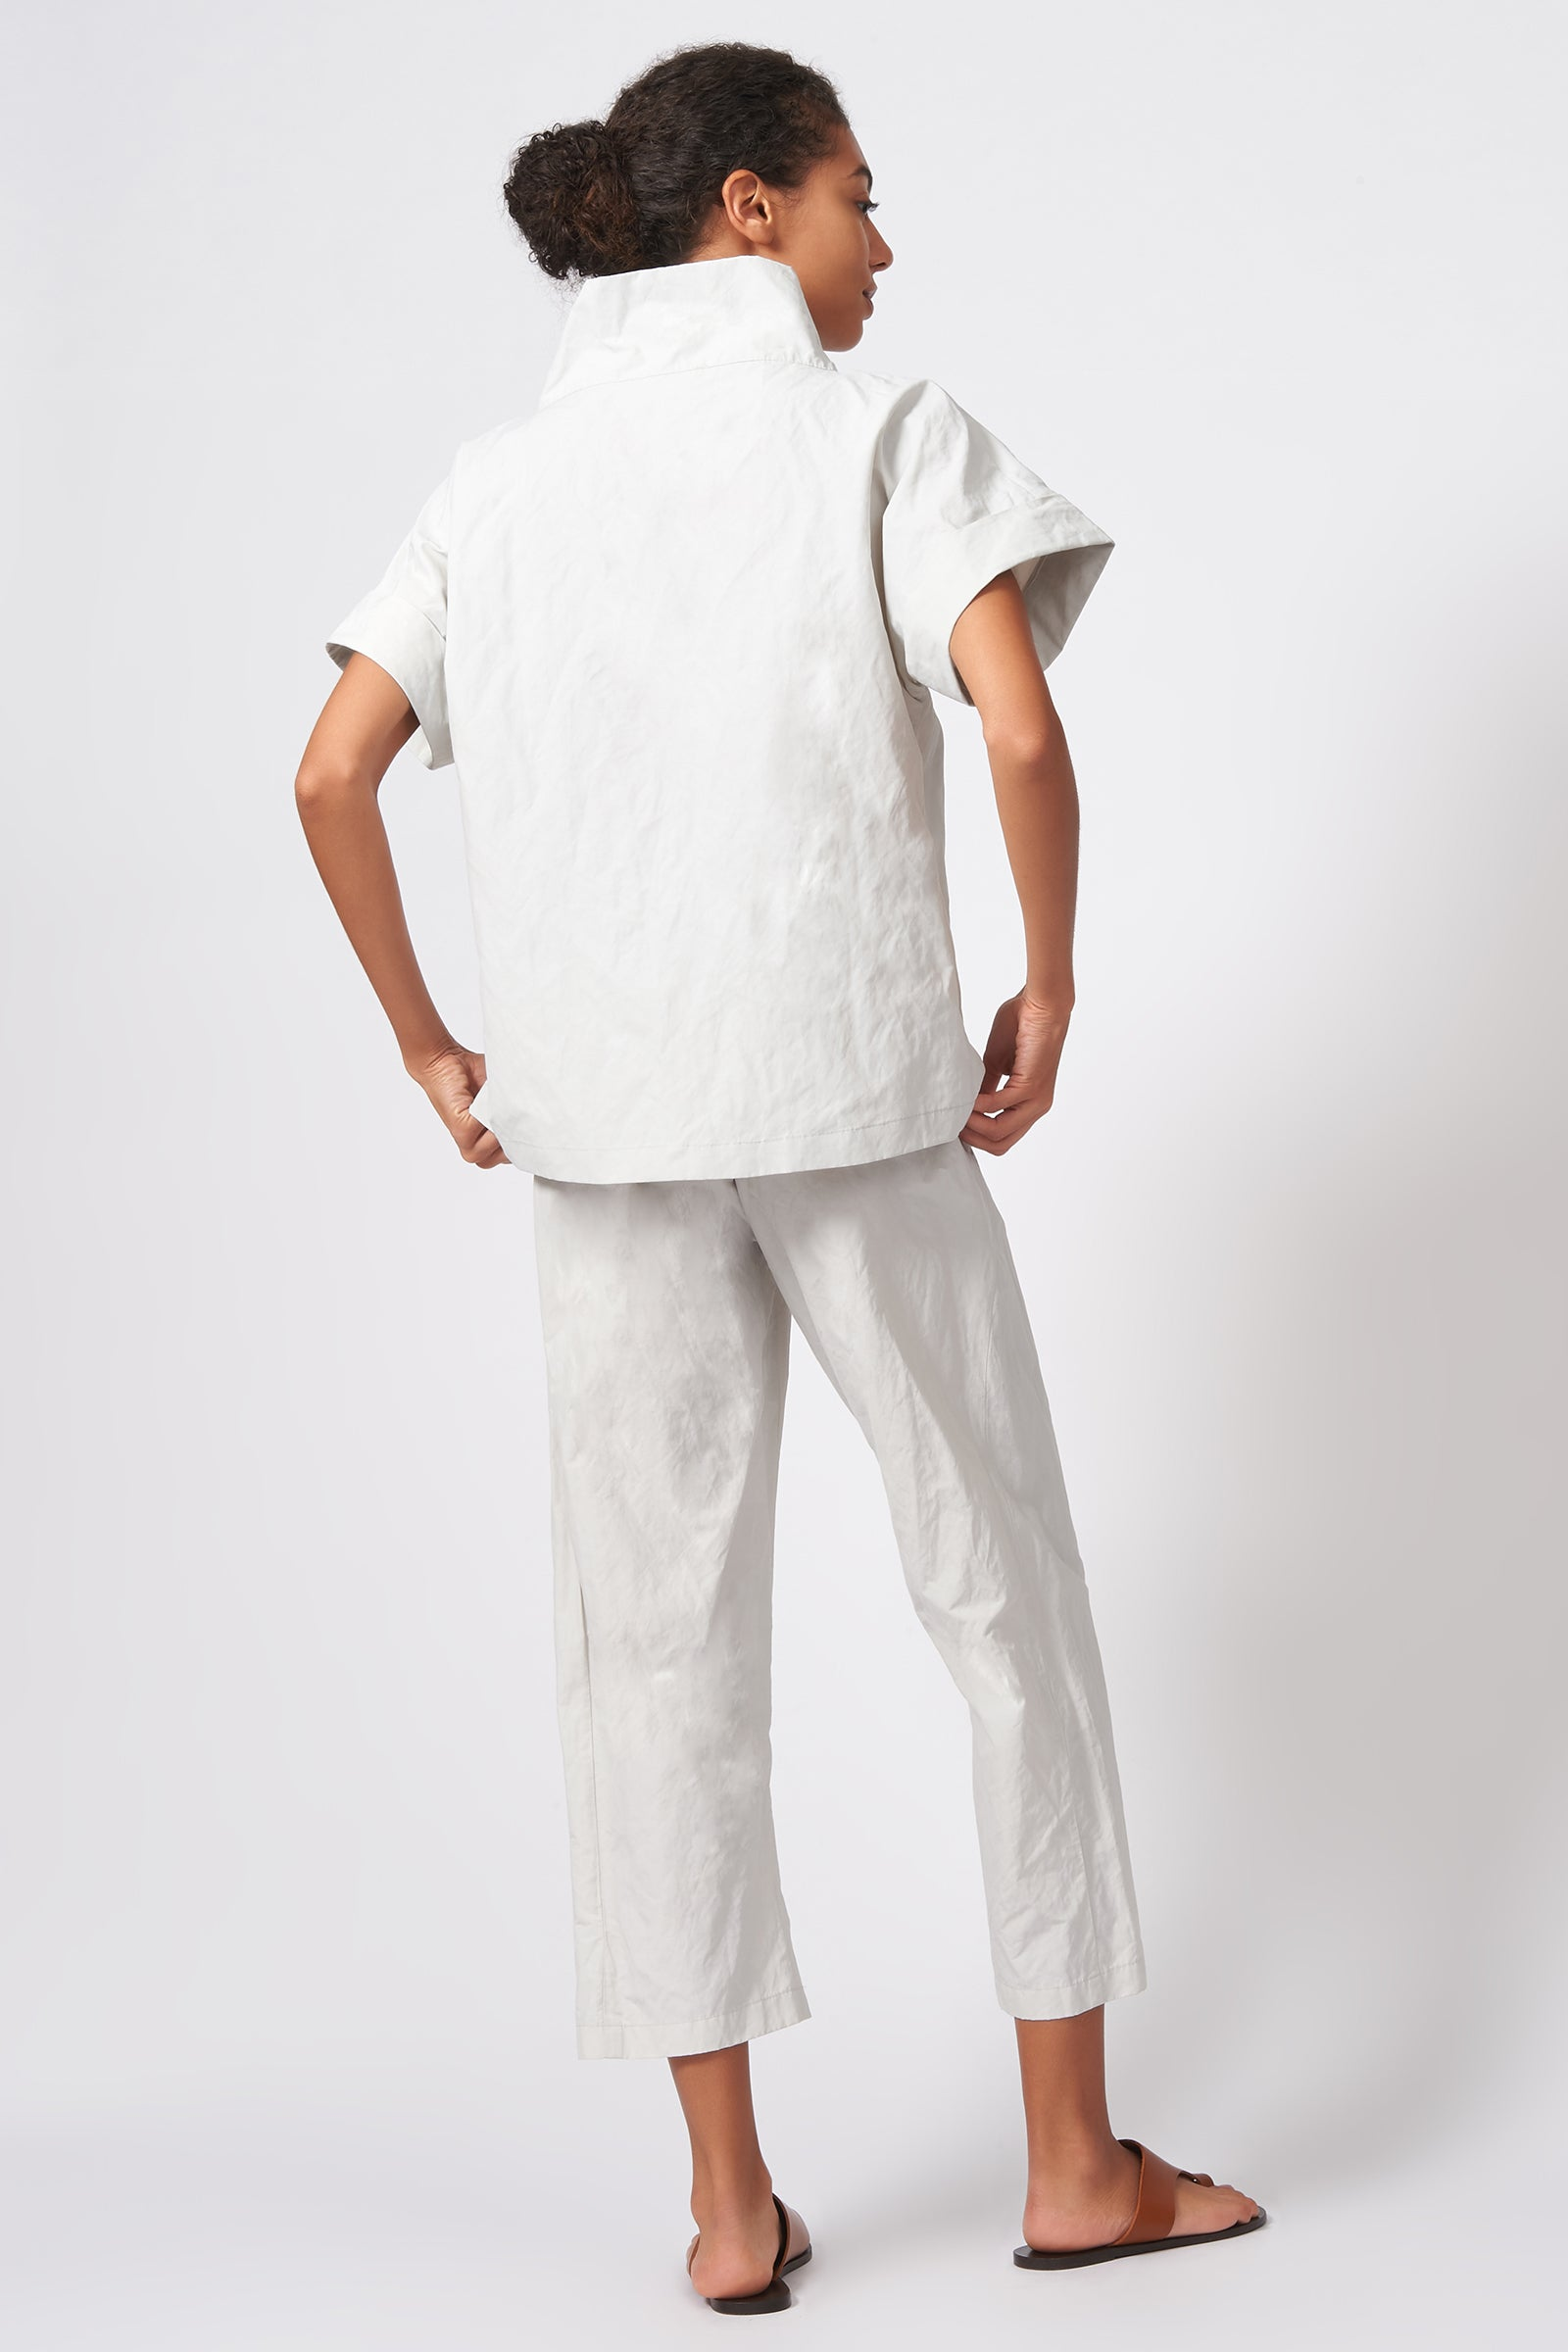 Kal Rieman Cuffed Kimono Tee in Stone Cotton Nylon on Model Front Full View